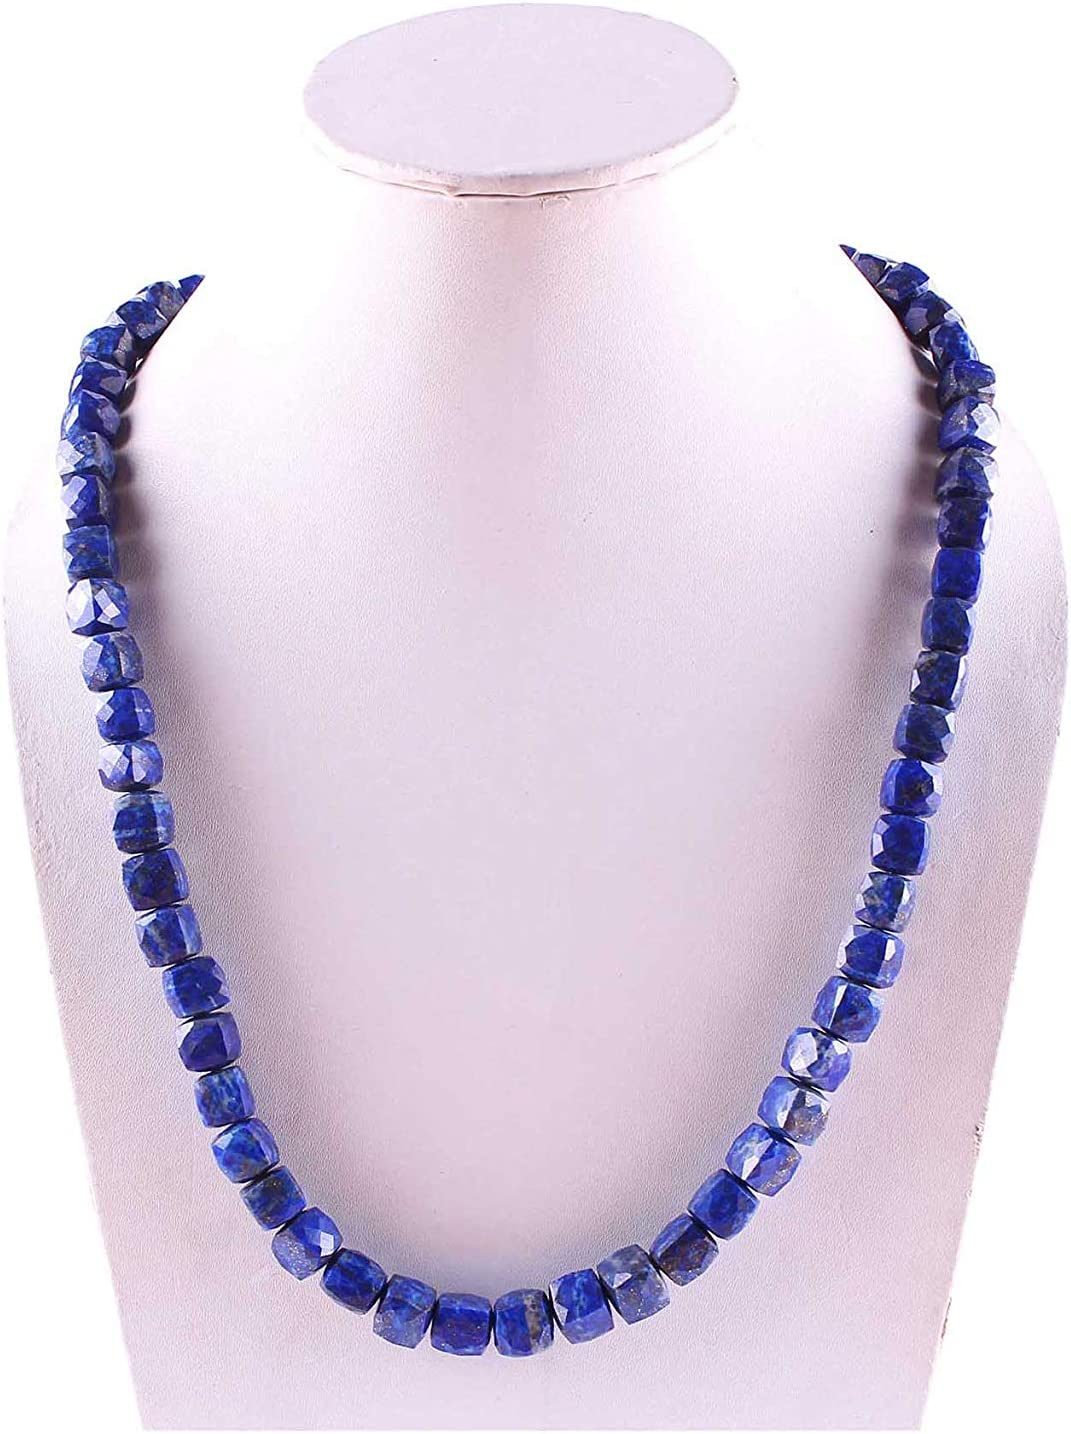 Natural Gemstone Max 49% OFF Lapis Lazuli Faceted Beaded Max 79% OFF Women for Necklace